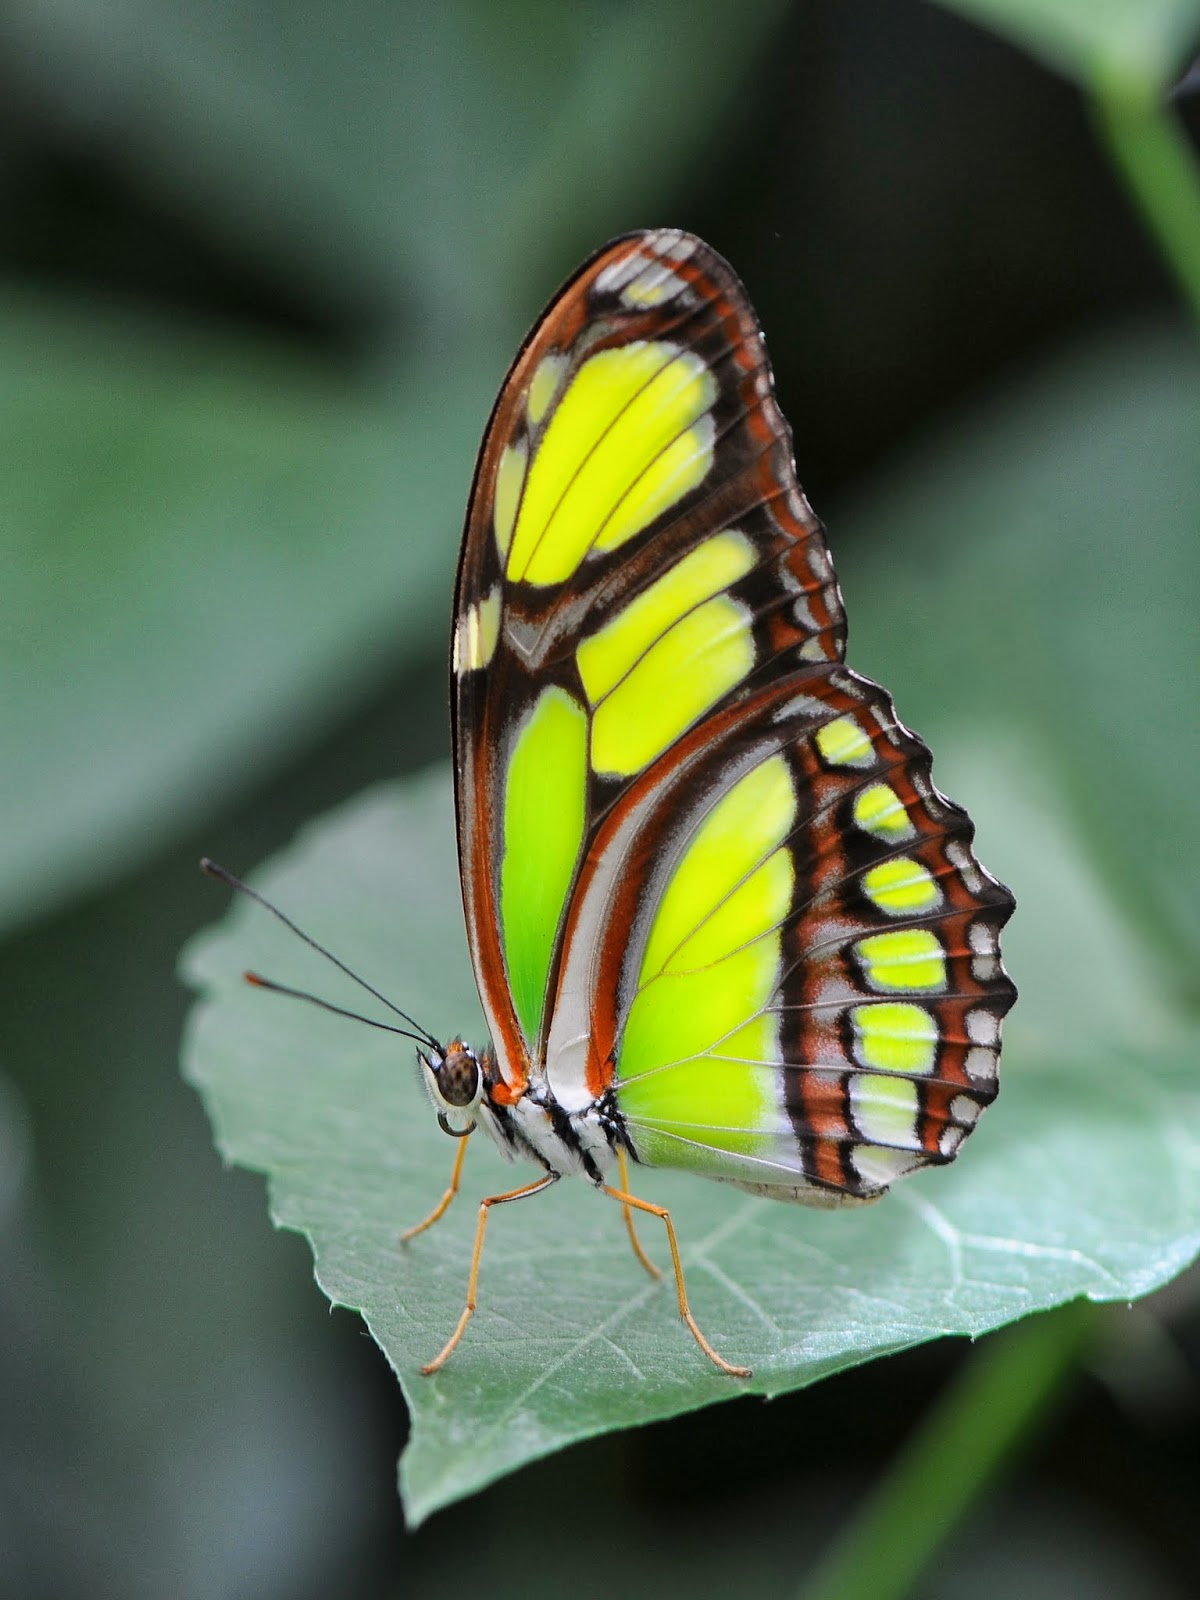 Blok888: Top 10 Most Beautiful Butterflies in the world 10 Most Beautiful Butterflies